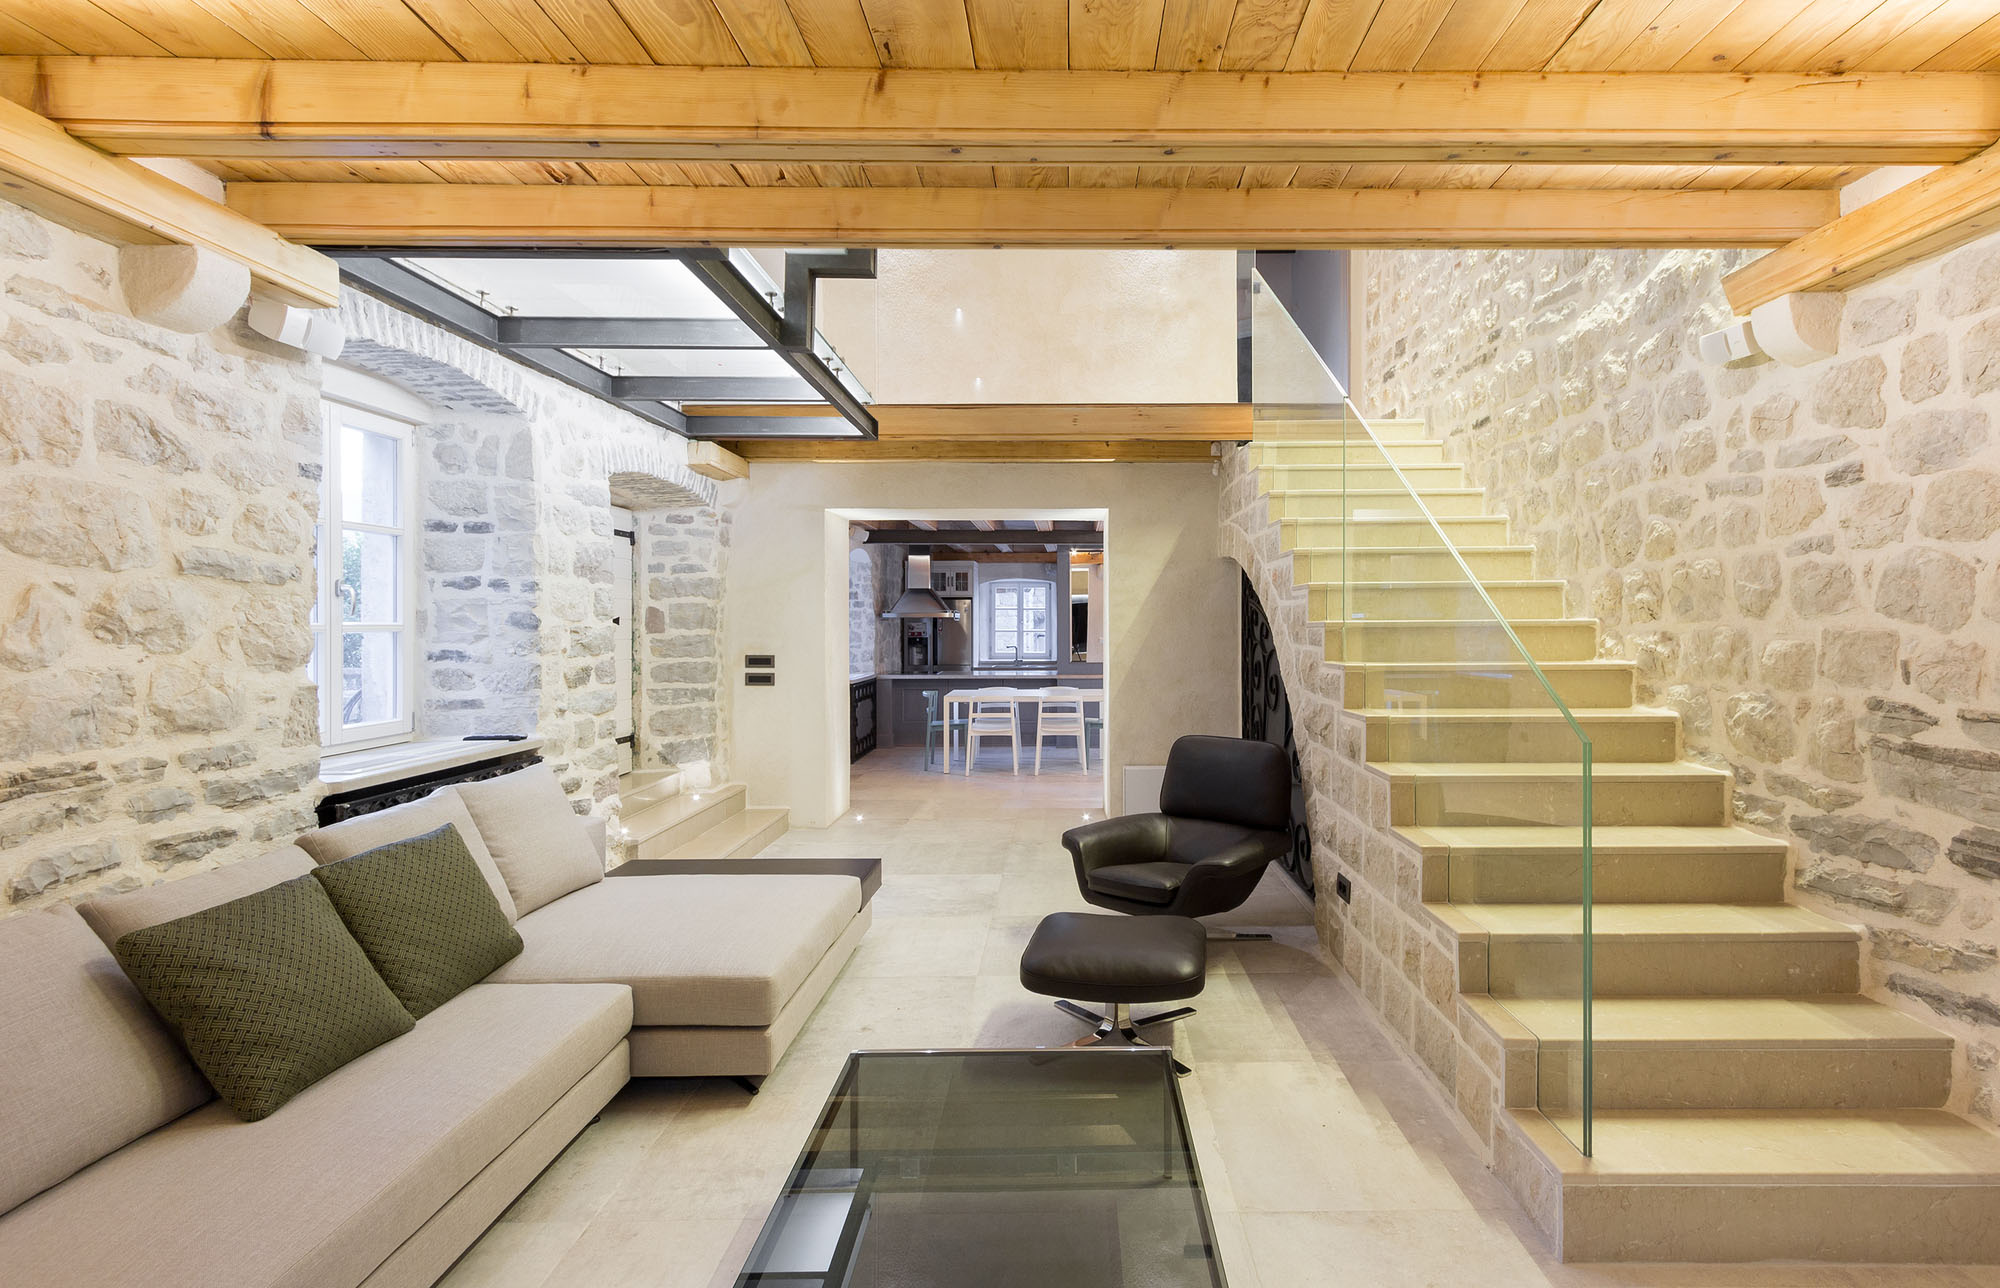 Modern Renovation Of A 19th Century Old Stone House In